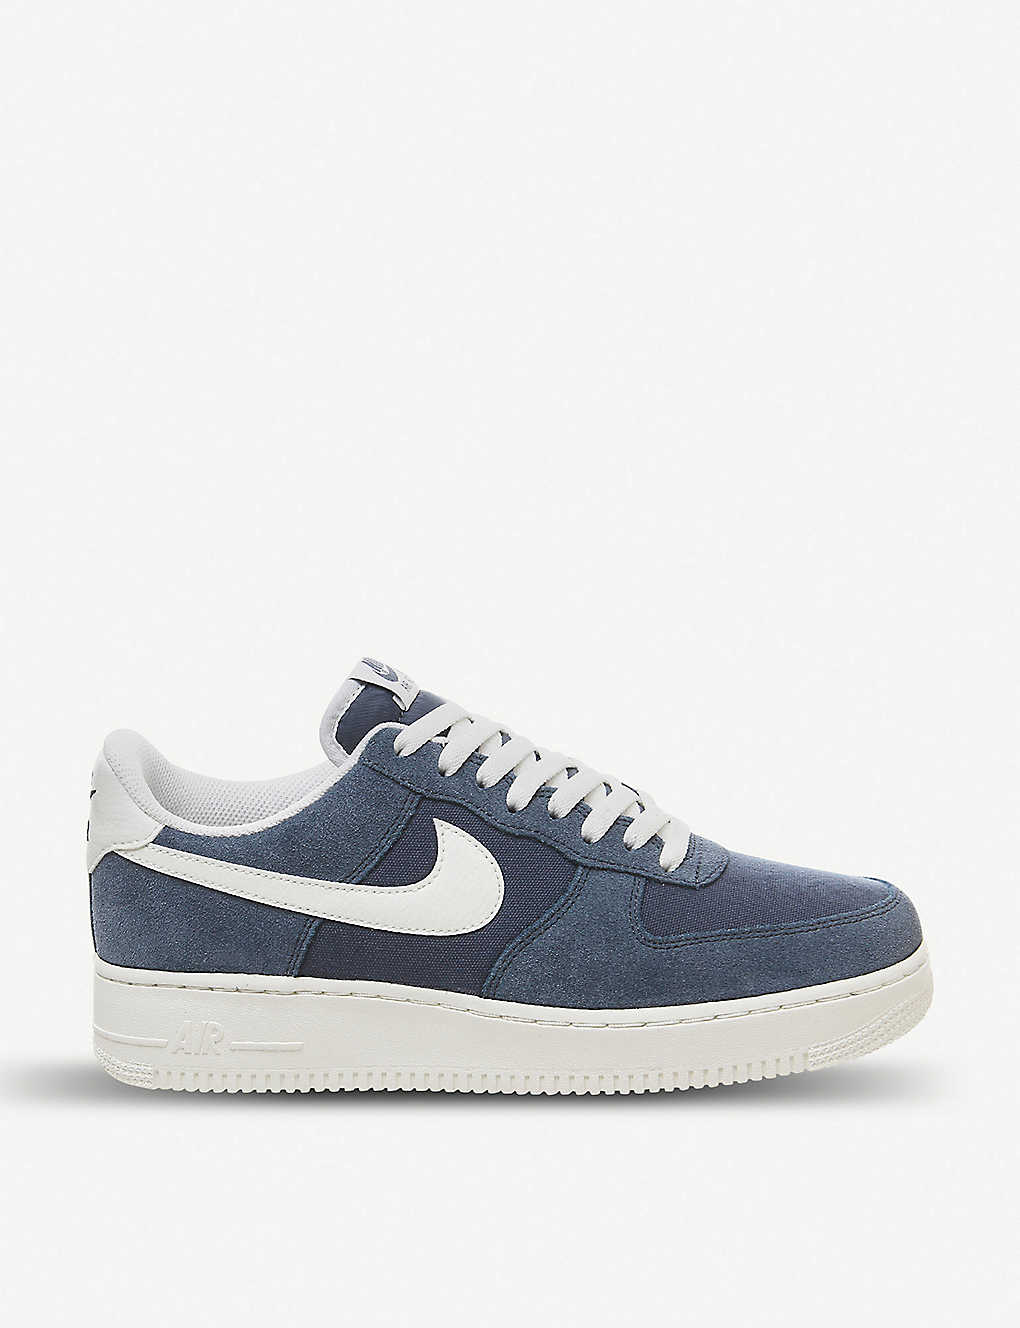 NIKE Air force 1 07 suede trainers |